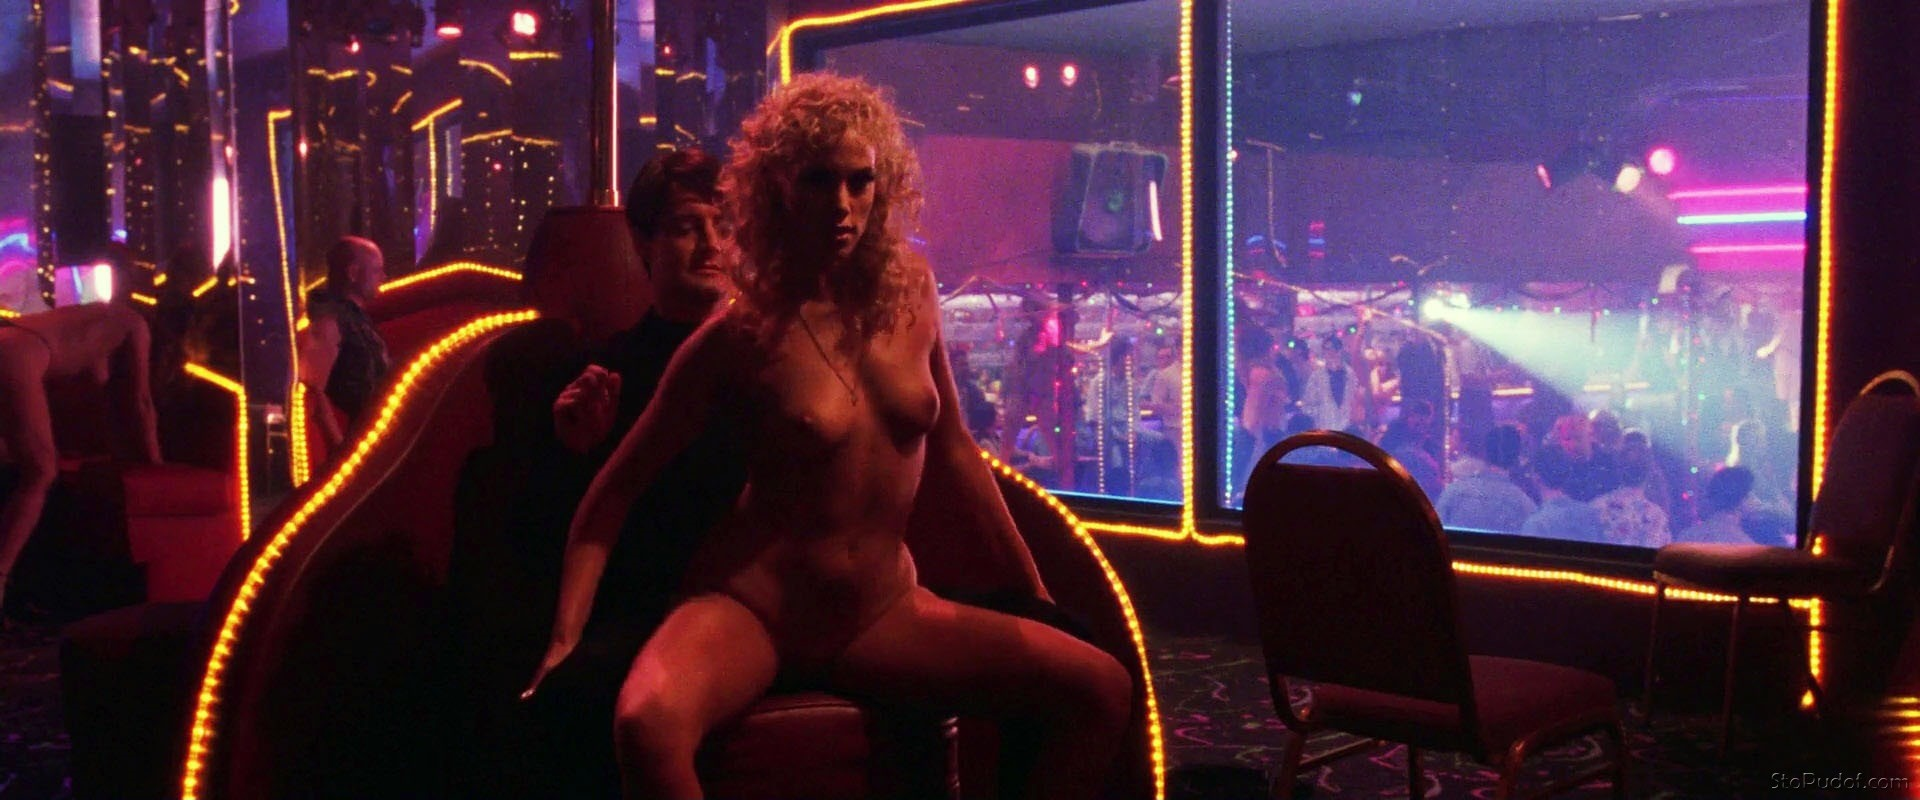 showgirls star berkley nude